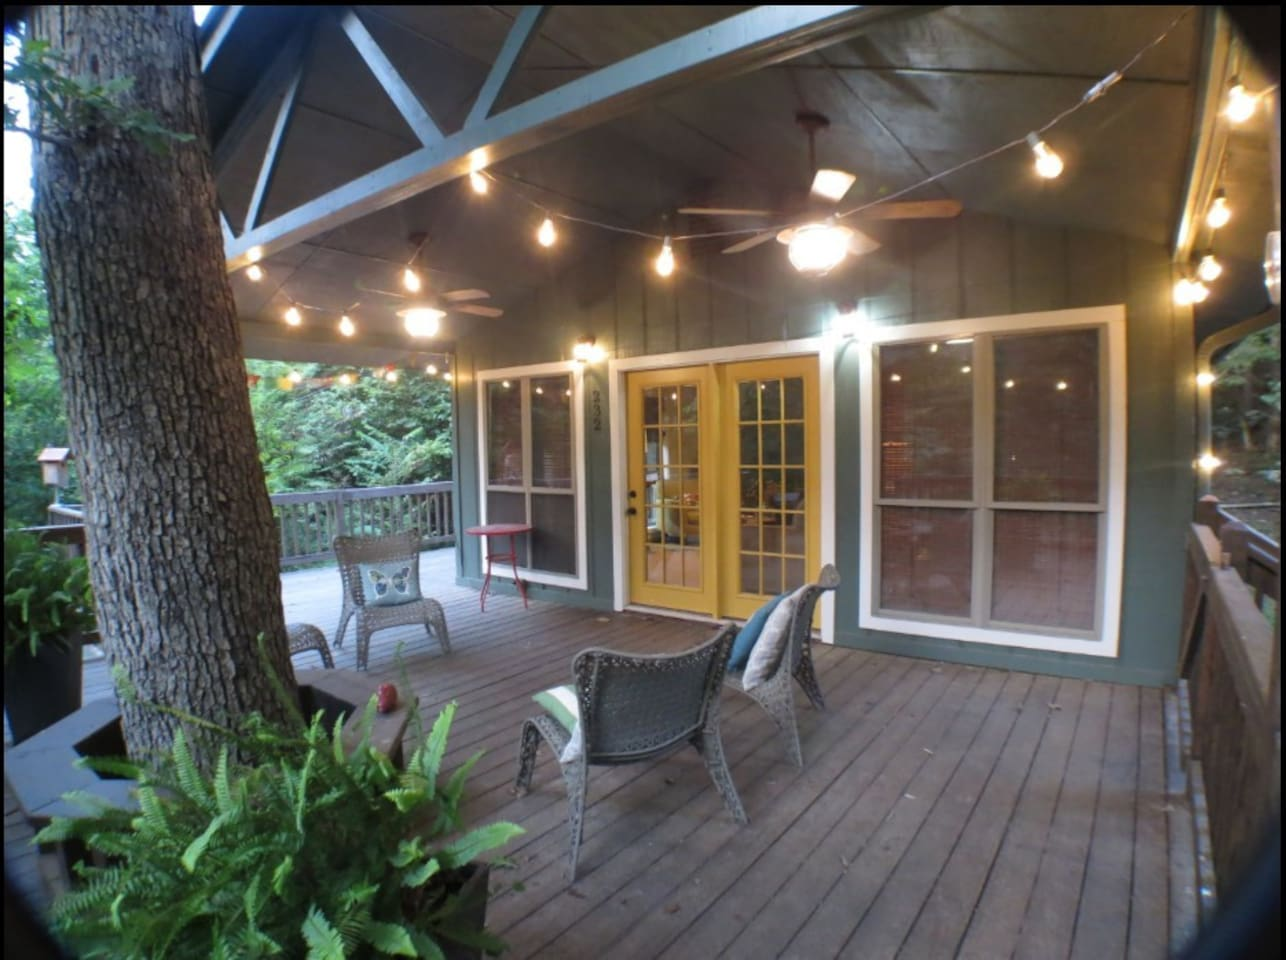 Oversized deck with charcoal grill and picnic table